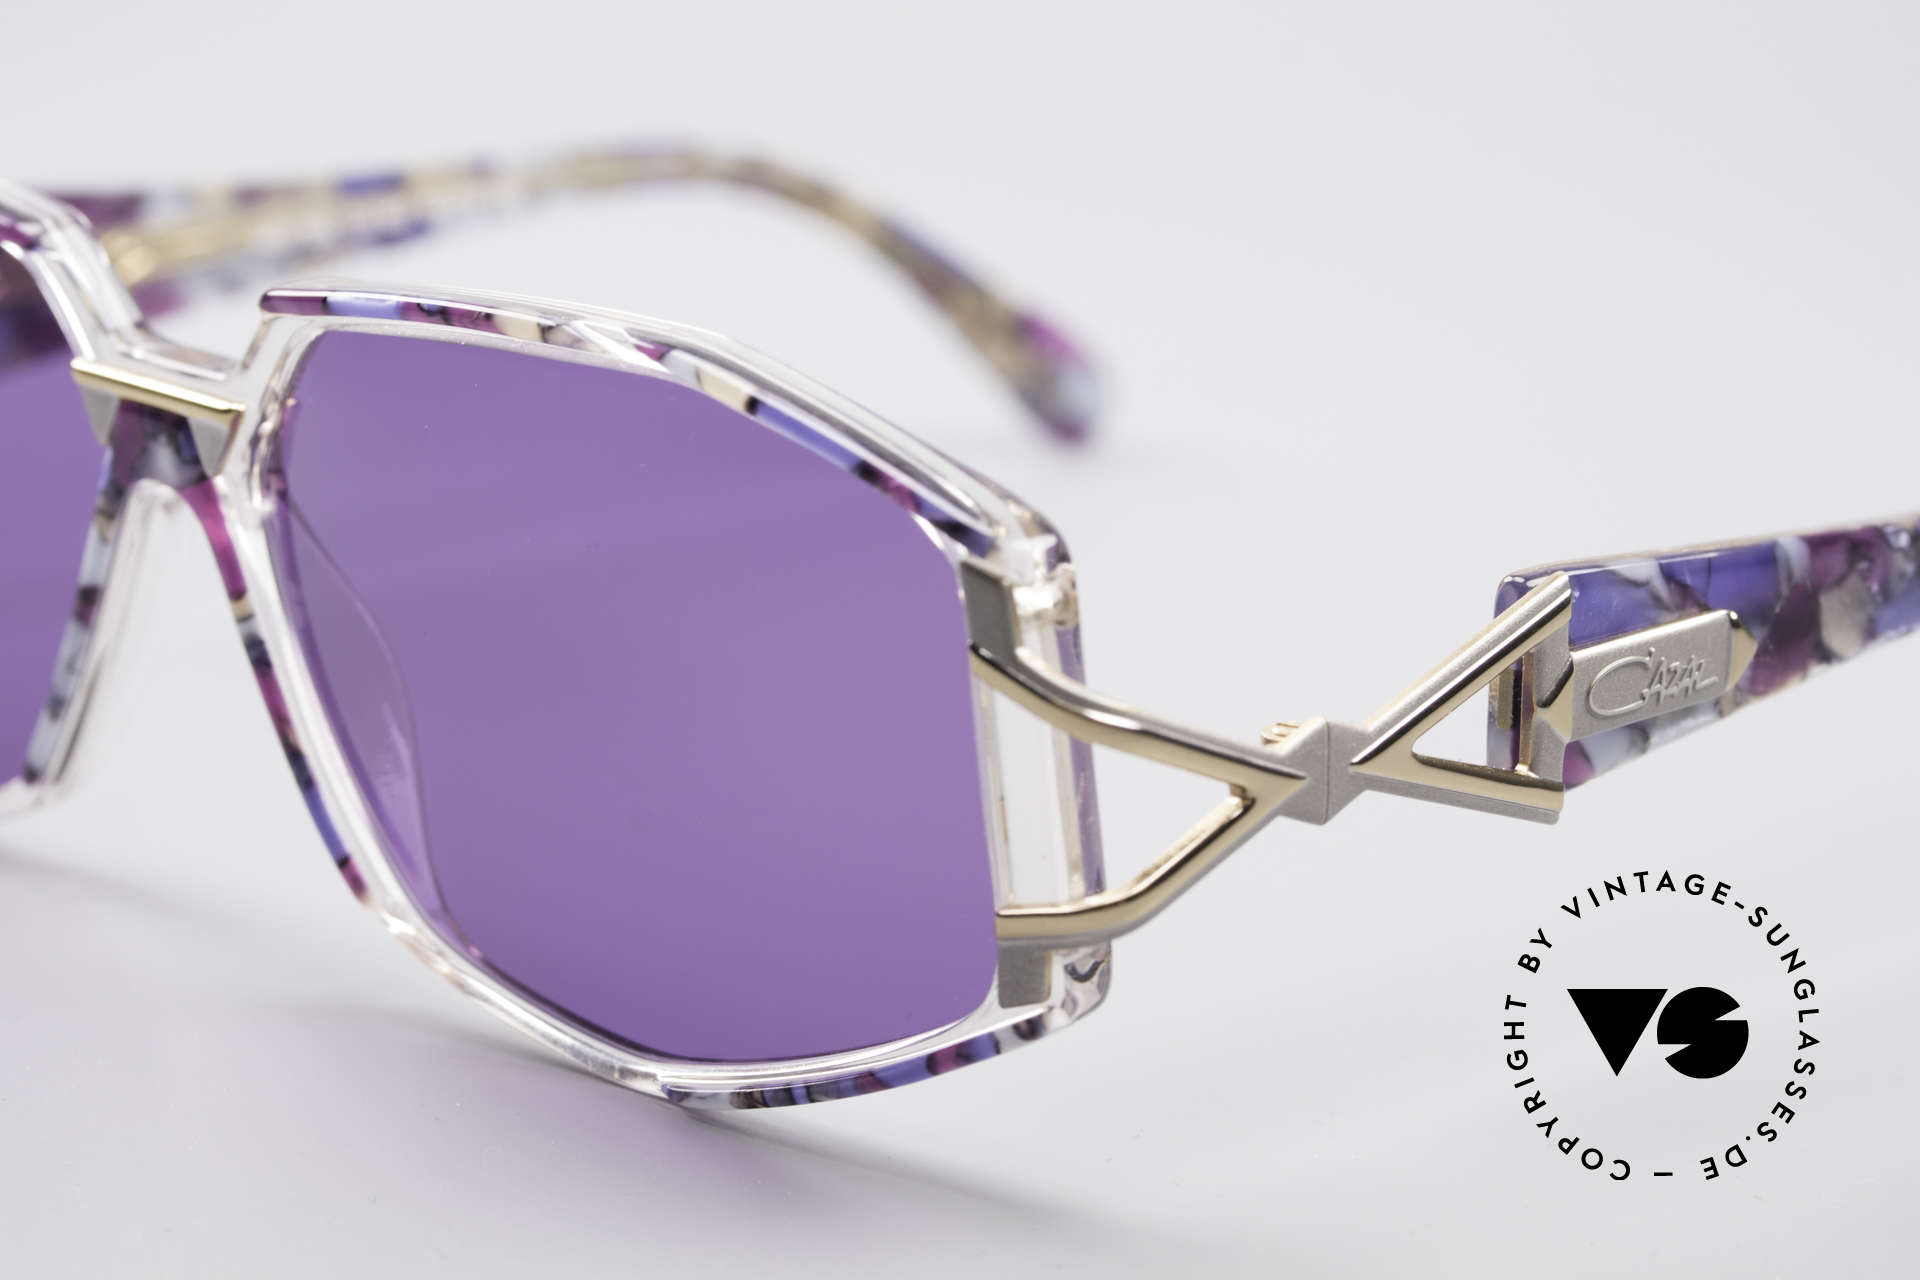 Cazal 368 90's Sunglasses Hip Hop Style, costly and fancy frame paintwork = distinctive CAZAL, Made for Women